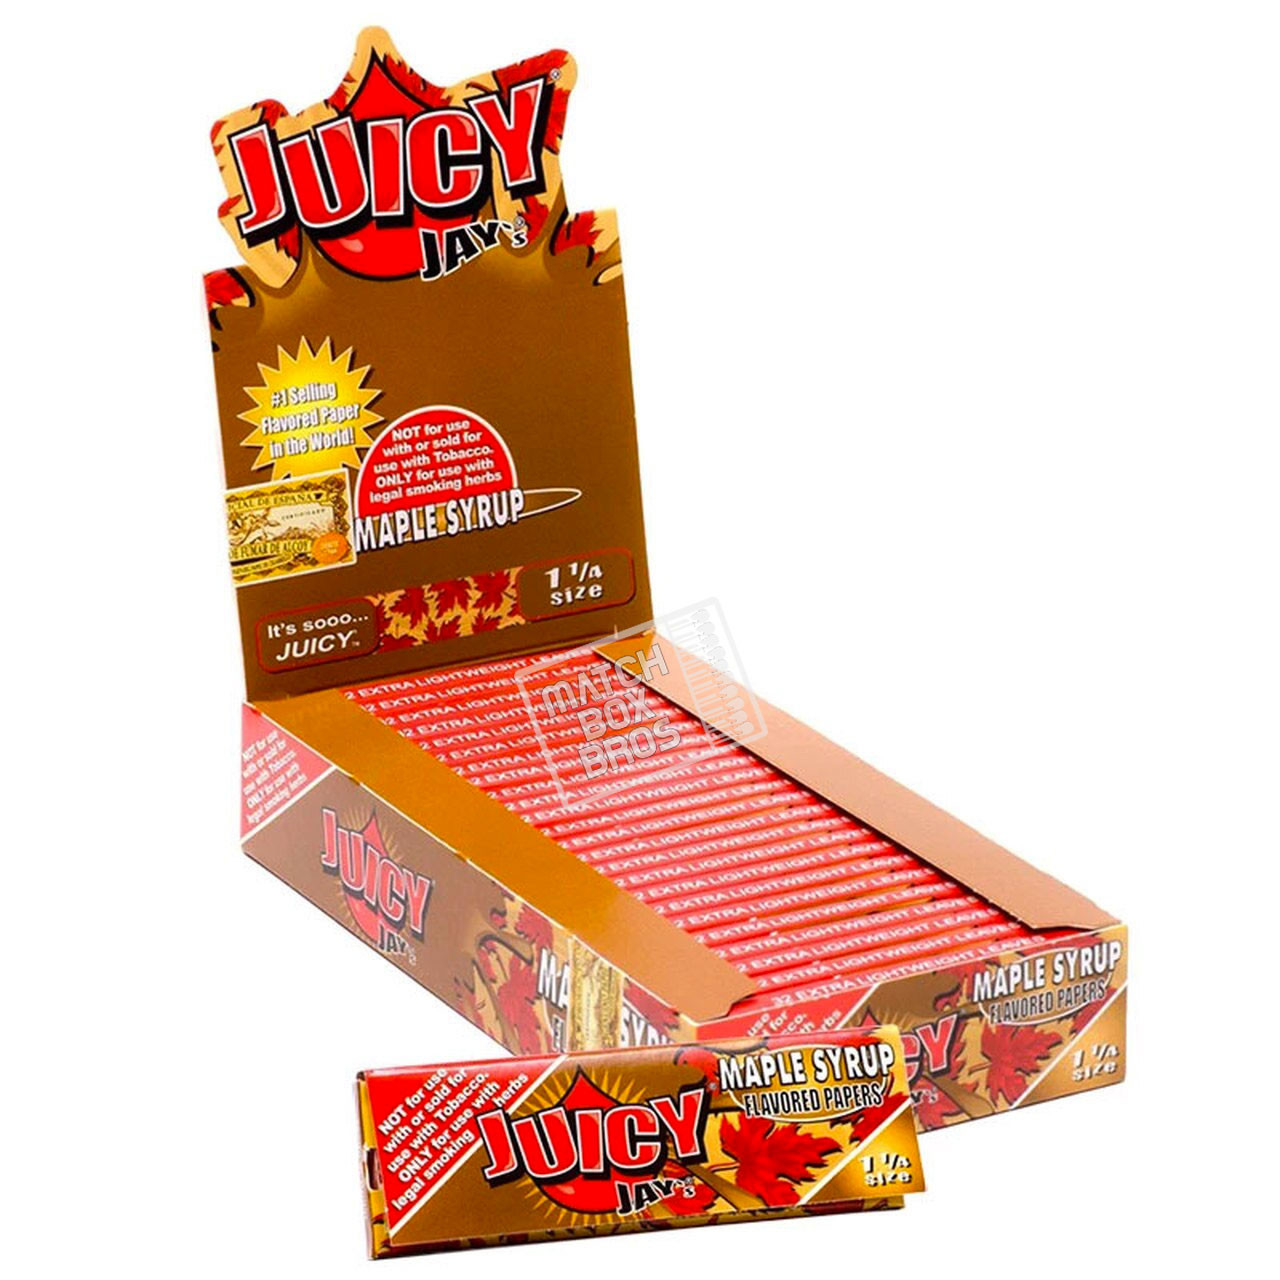 Juicy Jay's 1¼ Maple Syrup Flavoured Paper